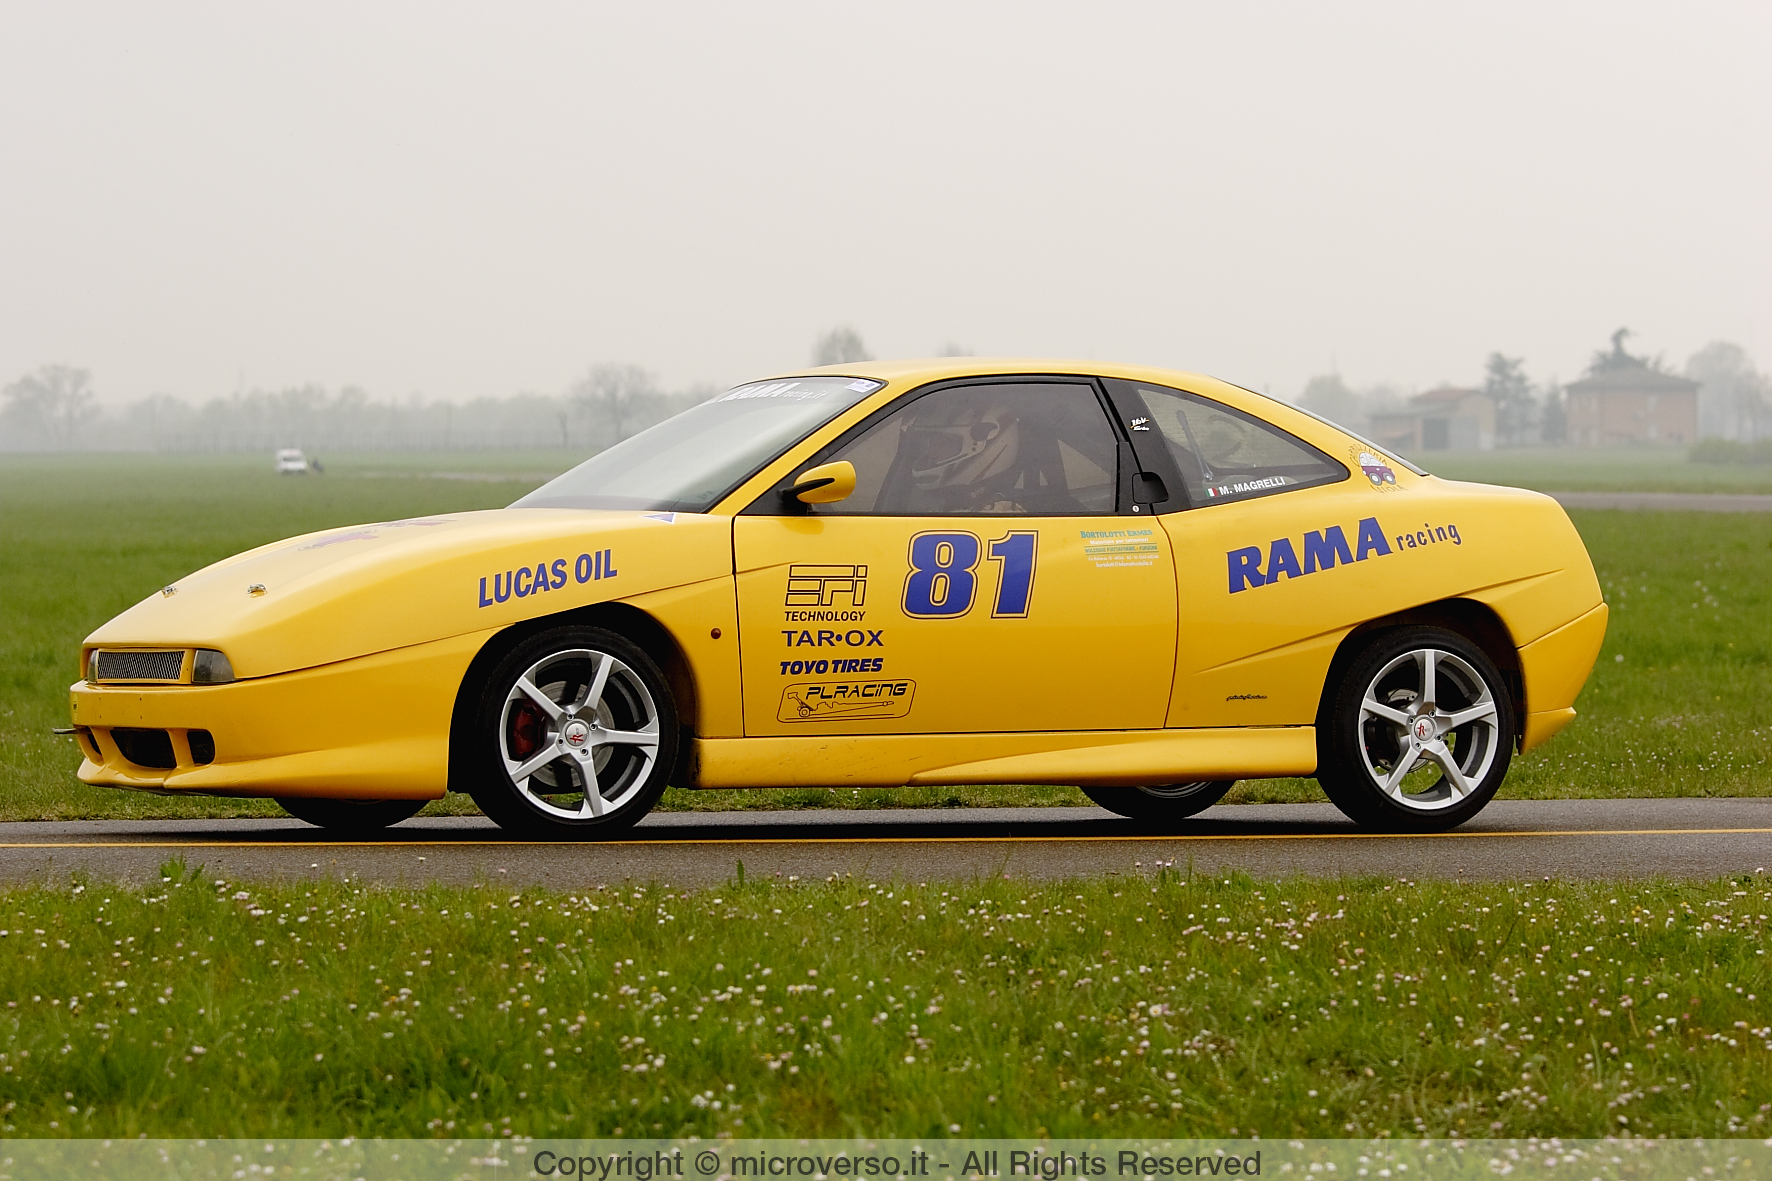 1995 Fiat Coupe 2.0 16v turbo 4x4